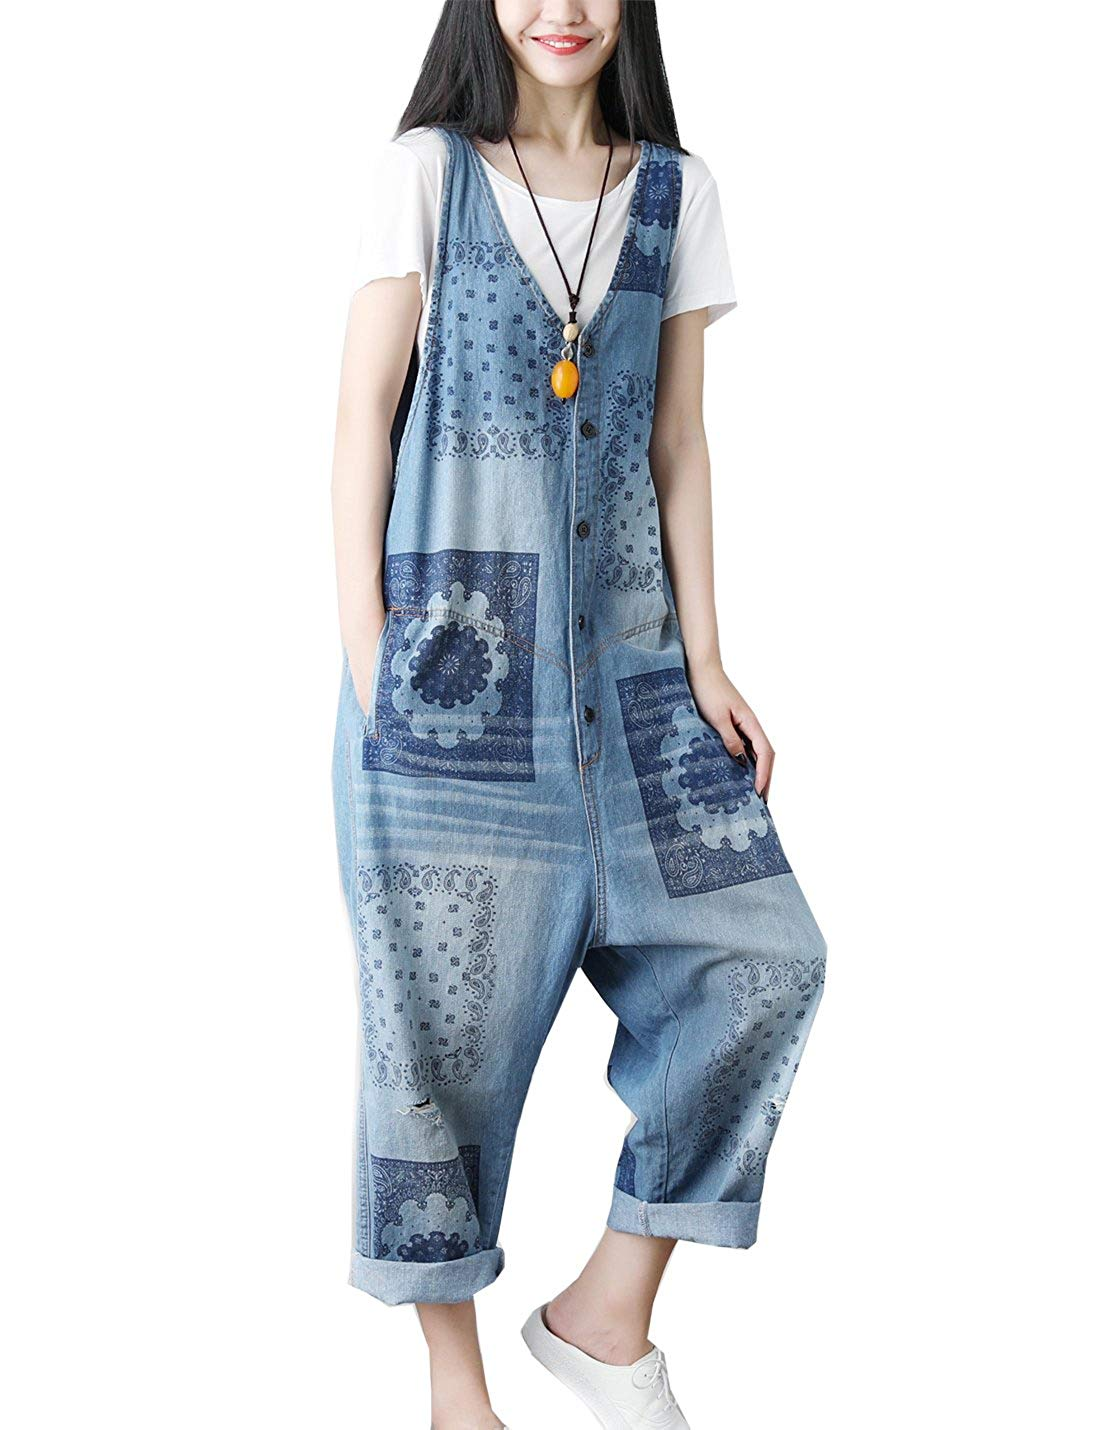 0334bd6075f7 Flygo Women's Loose Floral Printed Distressed Capri Denim Bib Overalls  Jumpsuit Rompers with Pockets